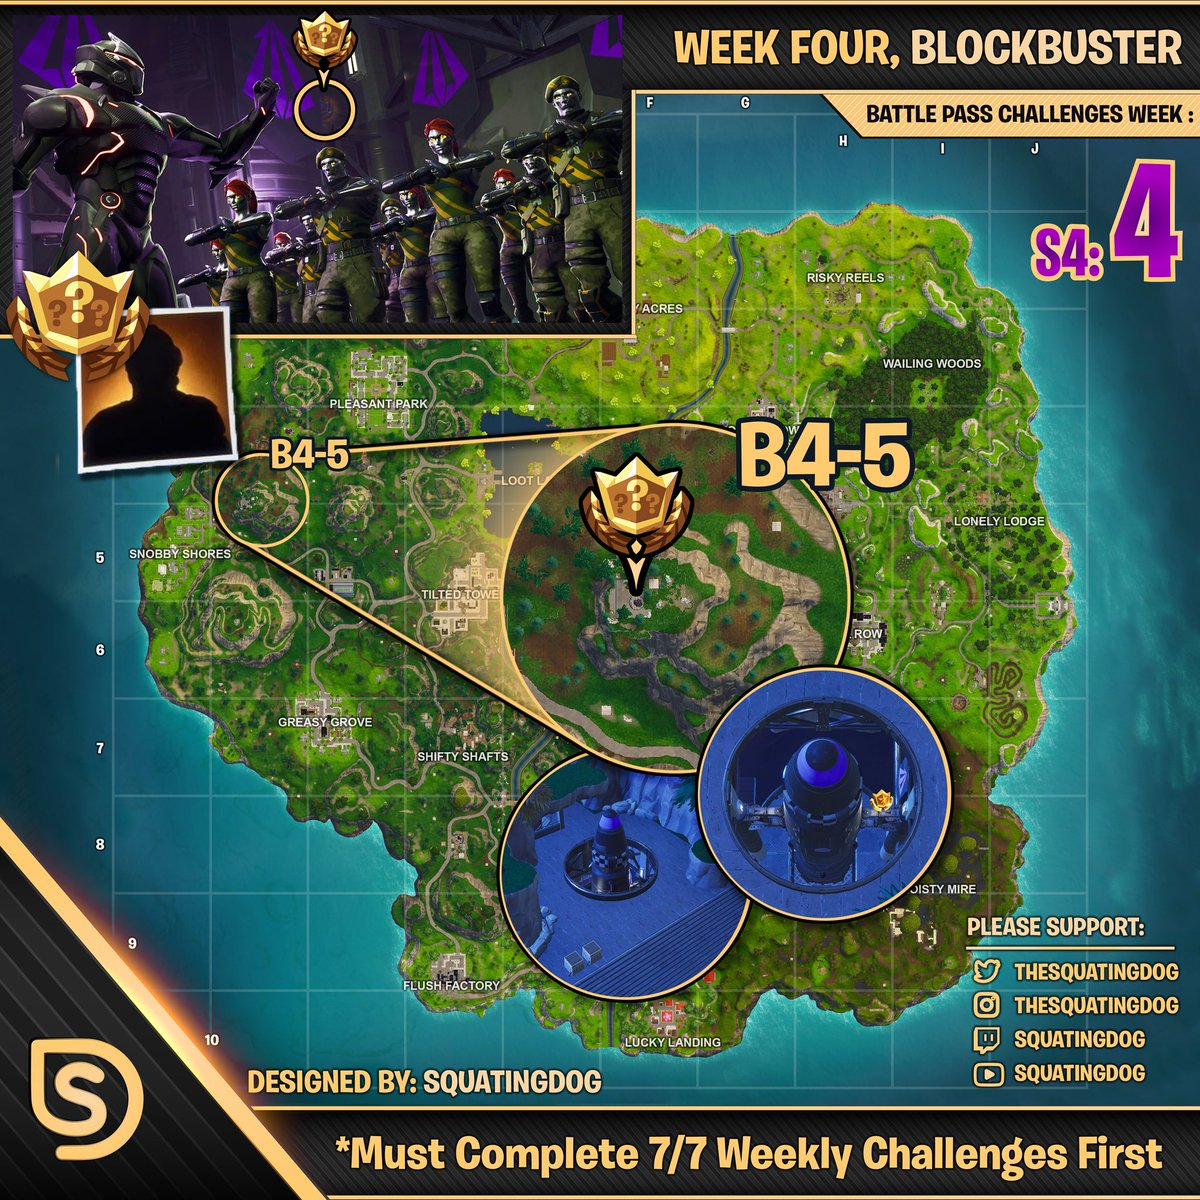 Whats Blockbuster In Fortnite Squatingdog On Twitter Retweet Tag A Friend Who Needs The Week 4 Blockbuster For Fortnite Battle Royale S Battlepass By Thesquatingdog Asap Fortnite Fortnitebr Fortnitebattlepass Fortnitecheatsheet Https T Co Rkcudnwawv